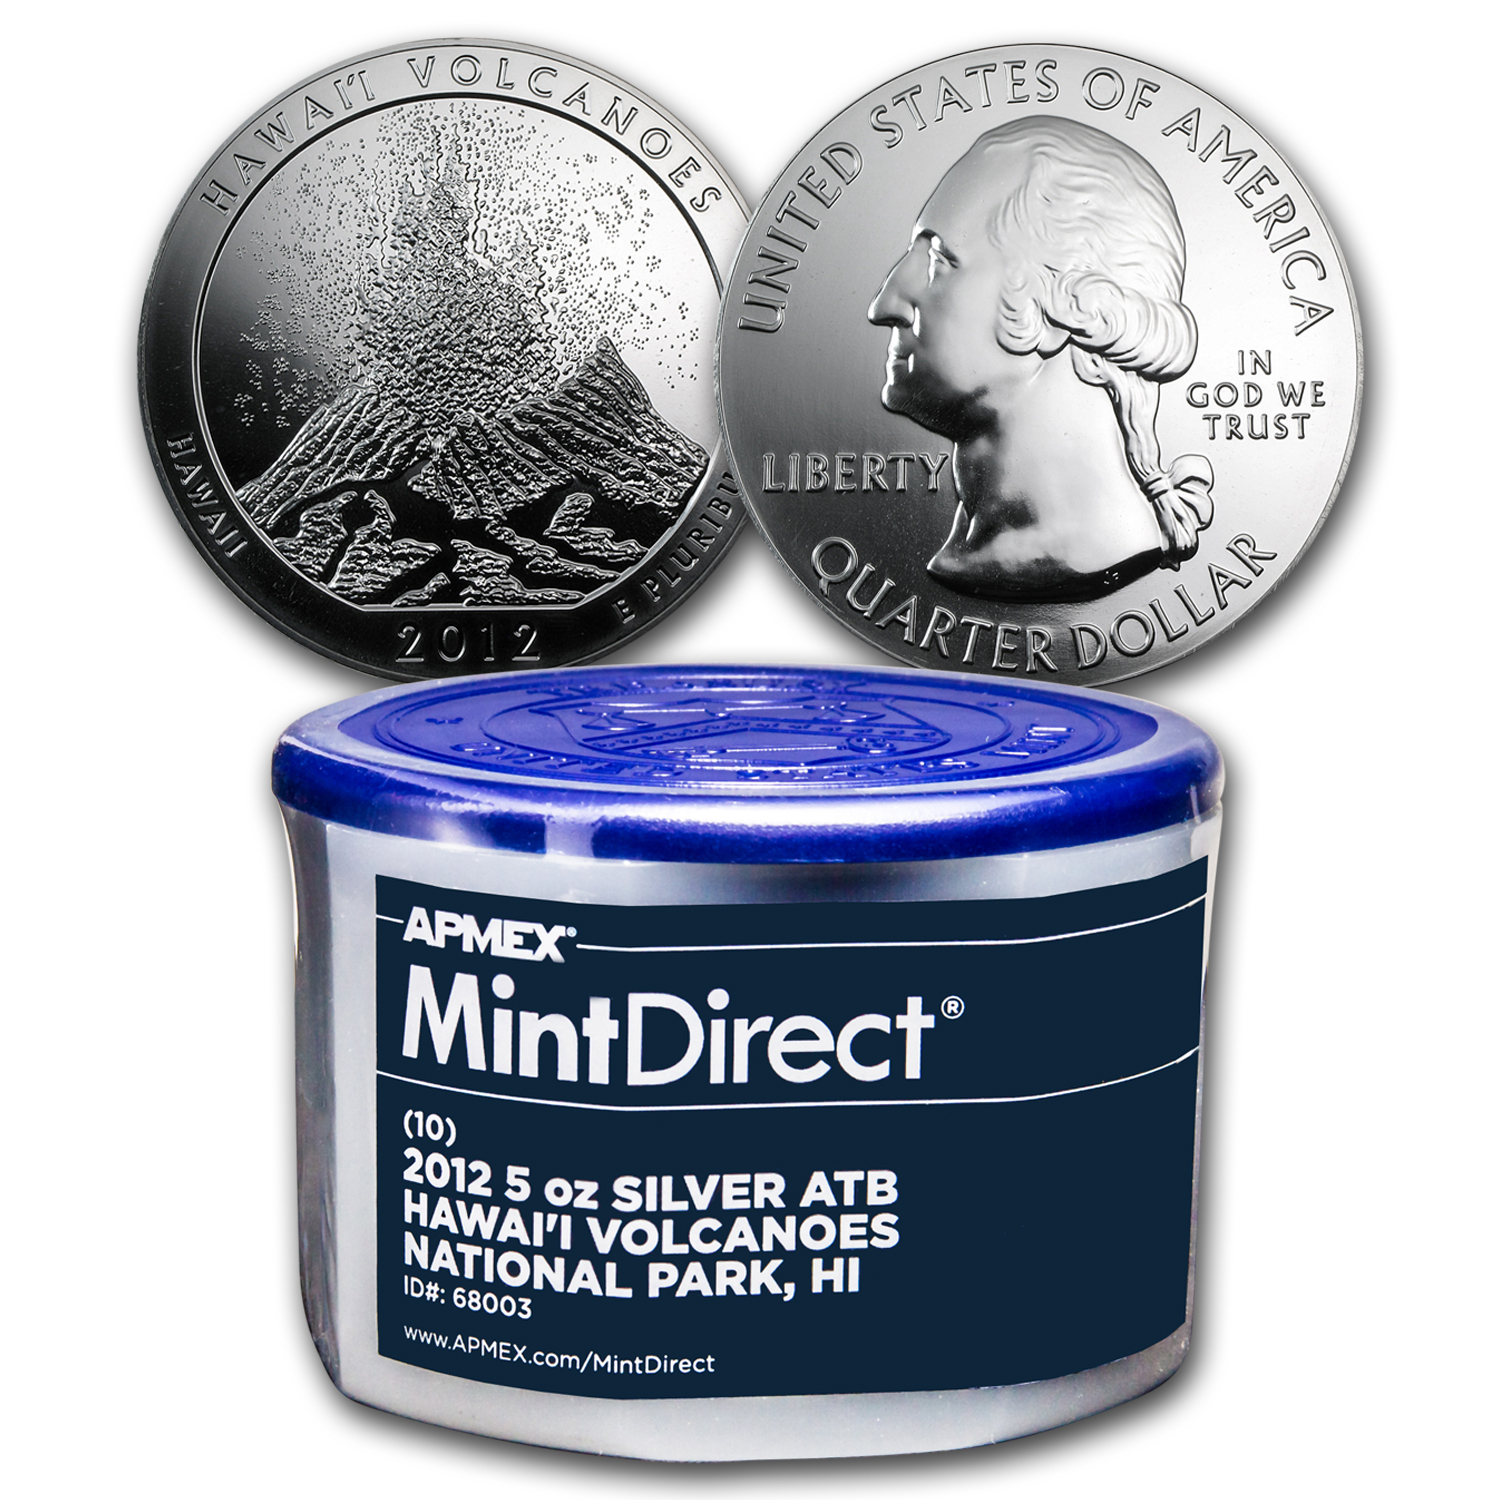 2012 5 oz Silver ATB Hawaii Volcanoes (10-coin MintDirect®)